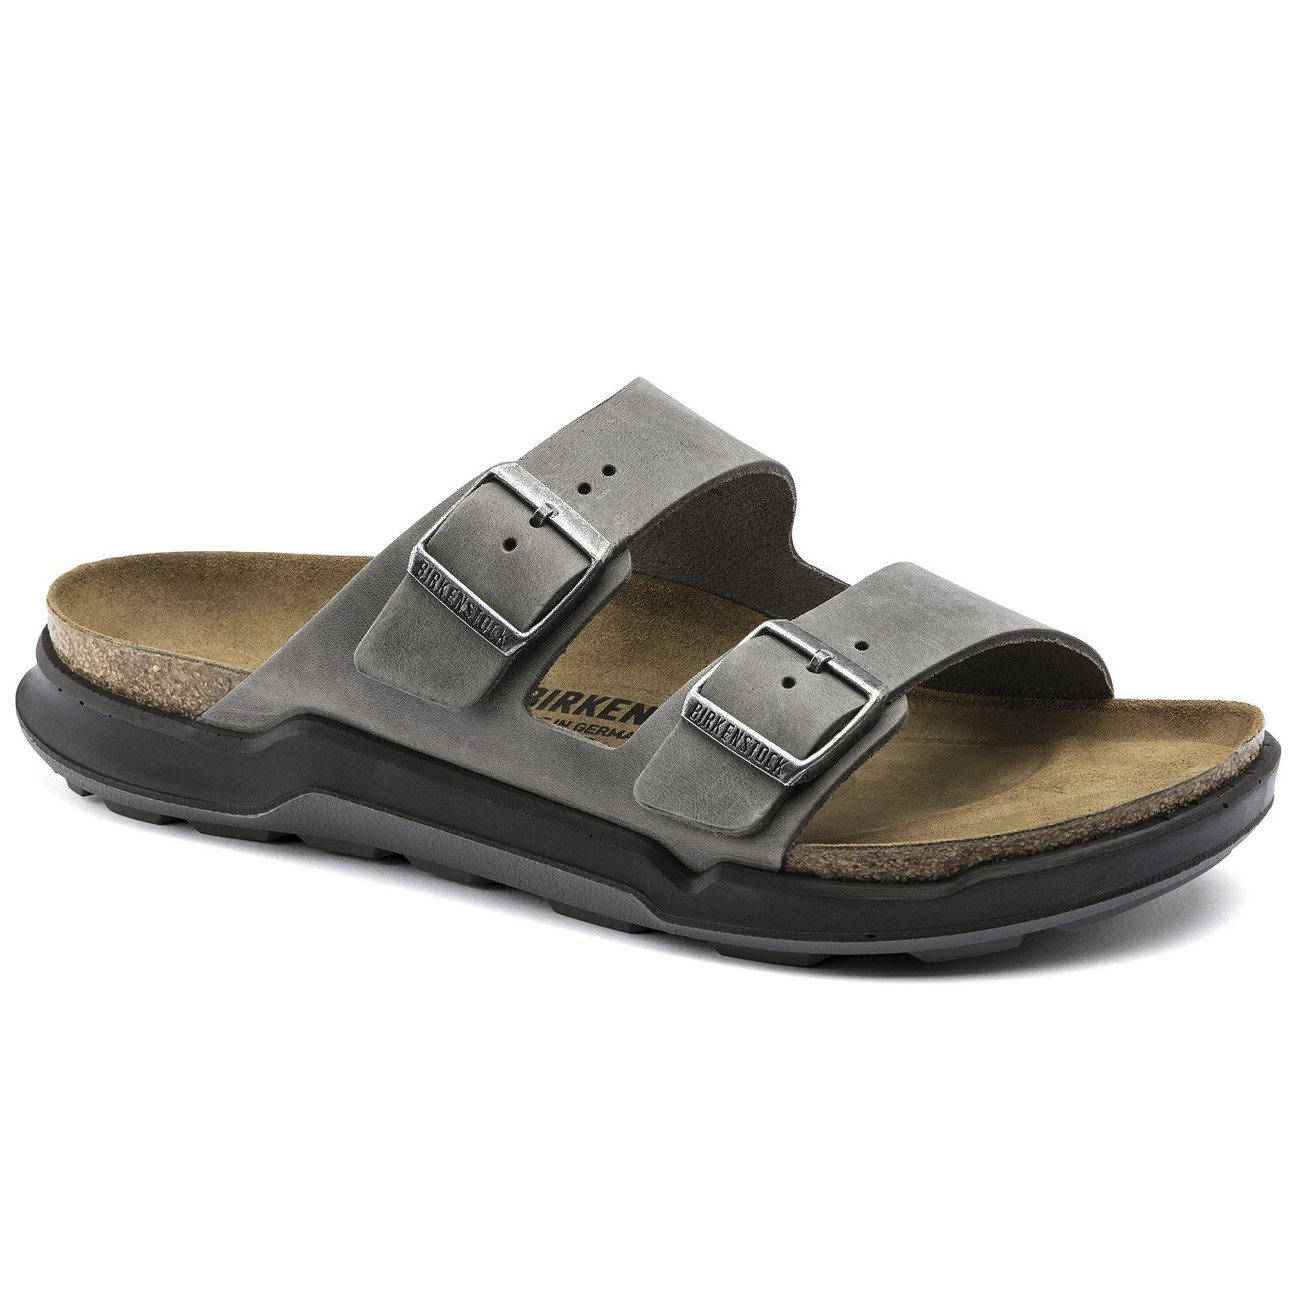 Birkenstock Adventure, Arizona, Nubuck Oiled Leather, Regular Fit, Iron Sandals Birkenstock Adventure Iron 40